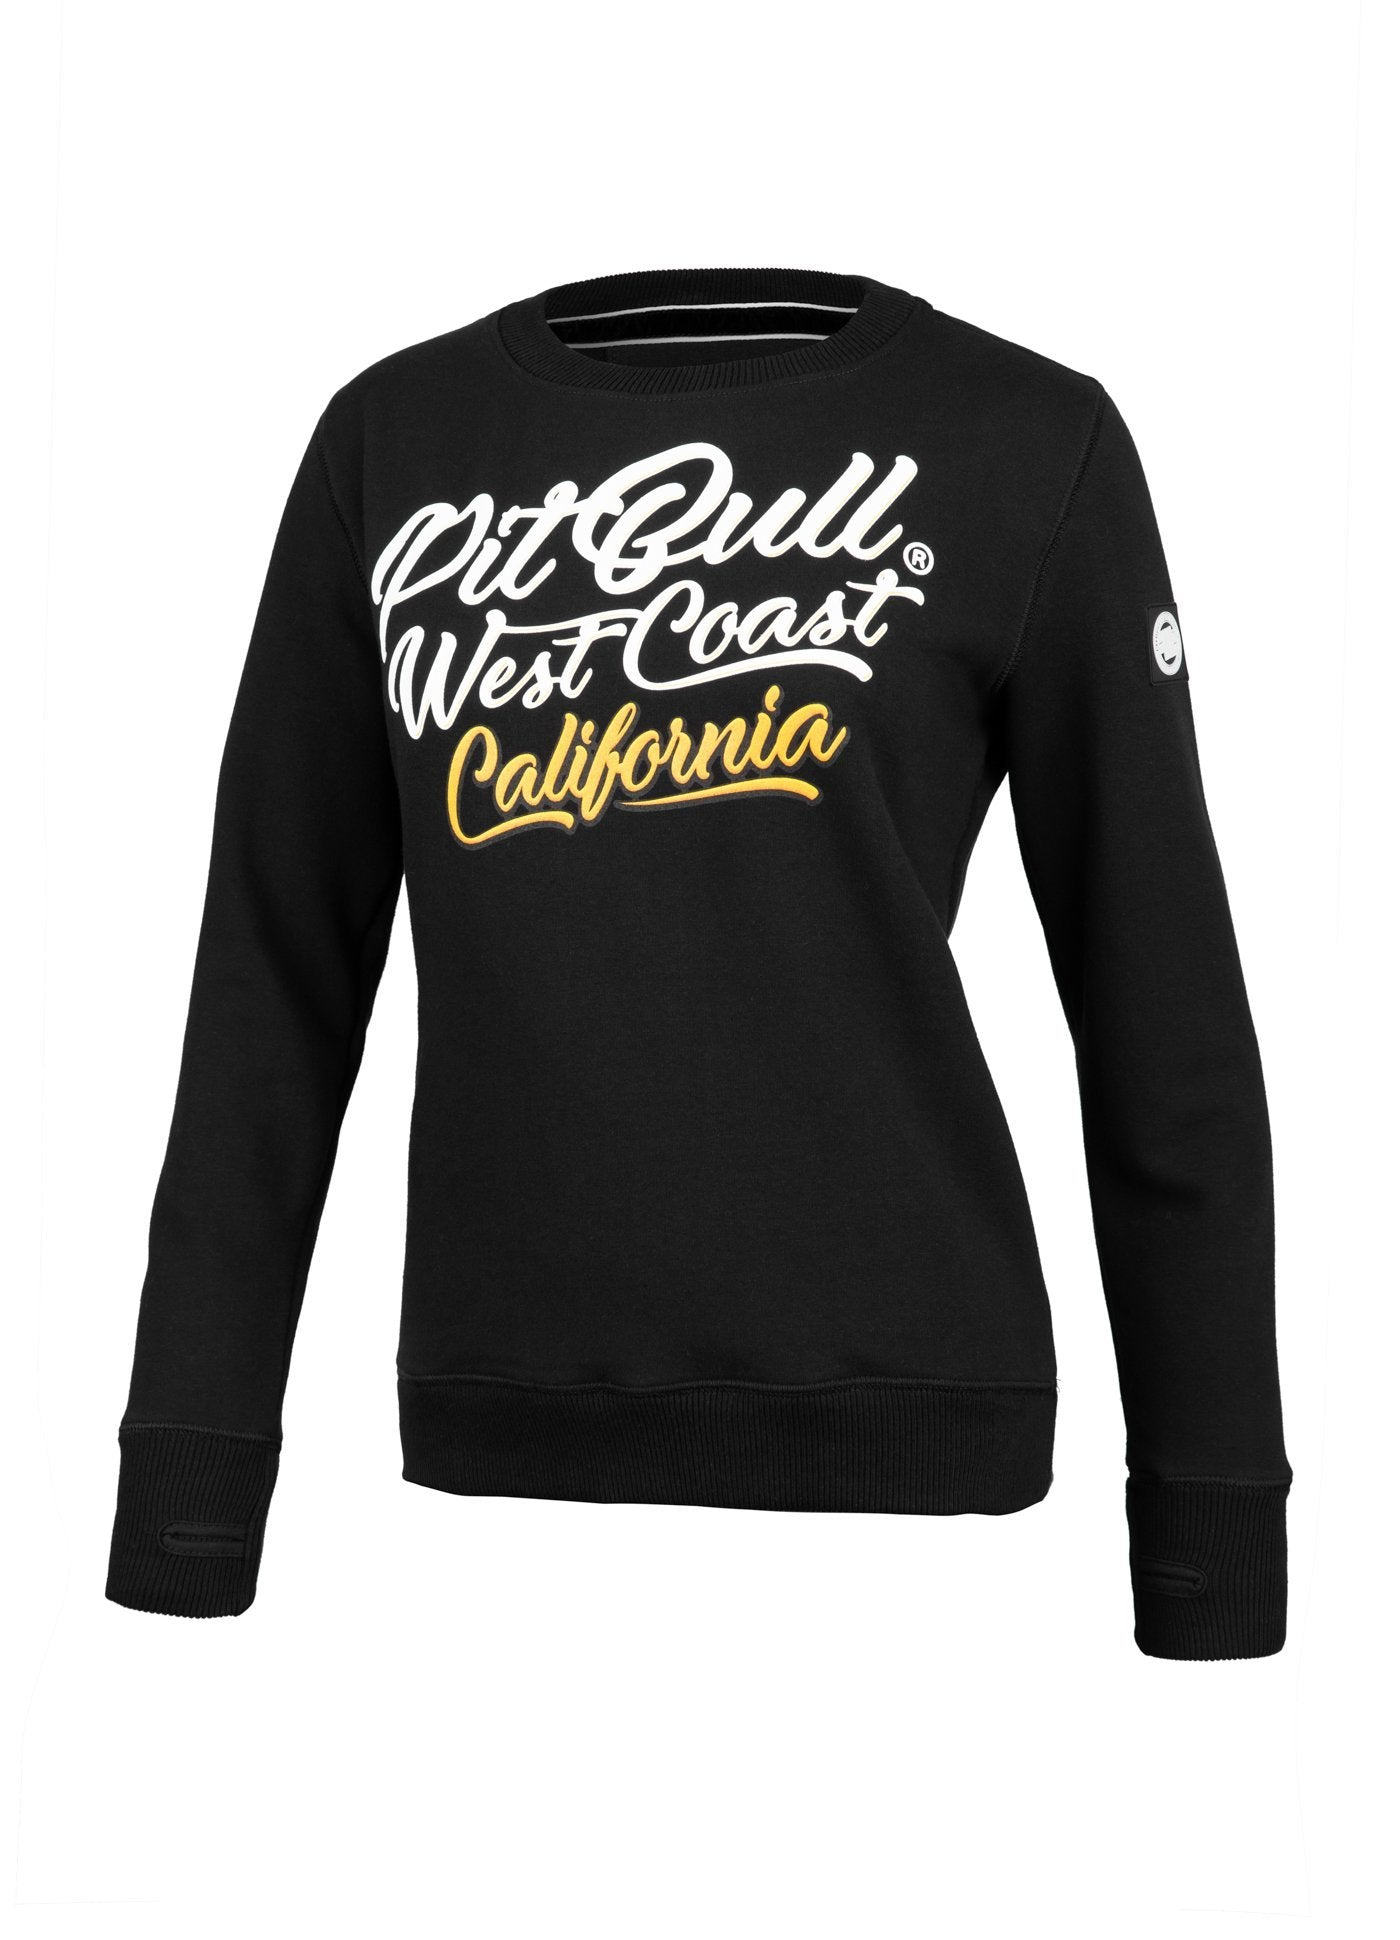 WOMEN CREWNECK Surf Dog BLACK - Pitbull West Coast U.S.A.